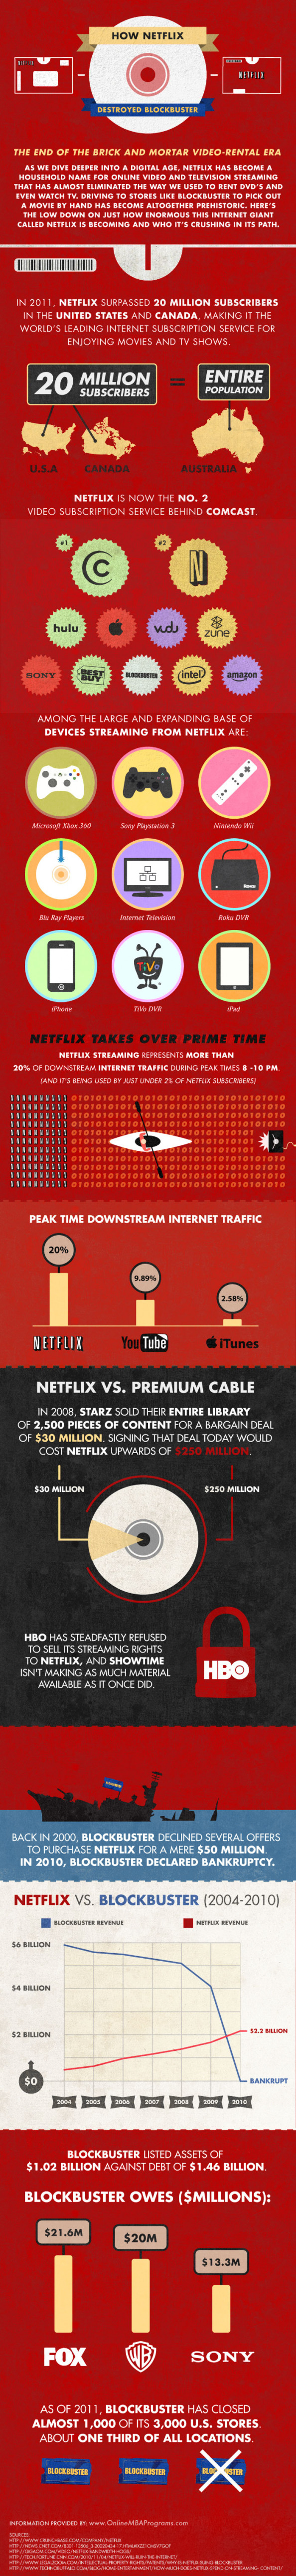 How Netflix Destroyed Blockbuster  Infographic